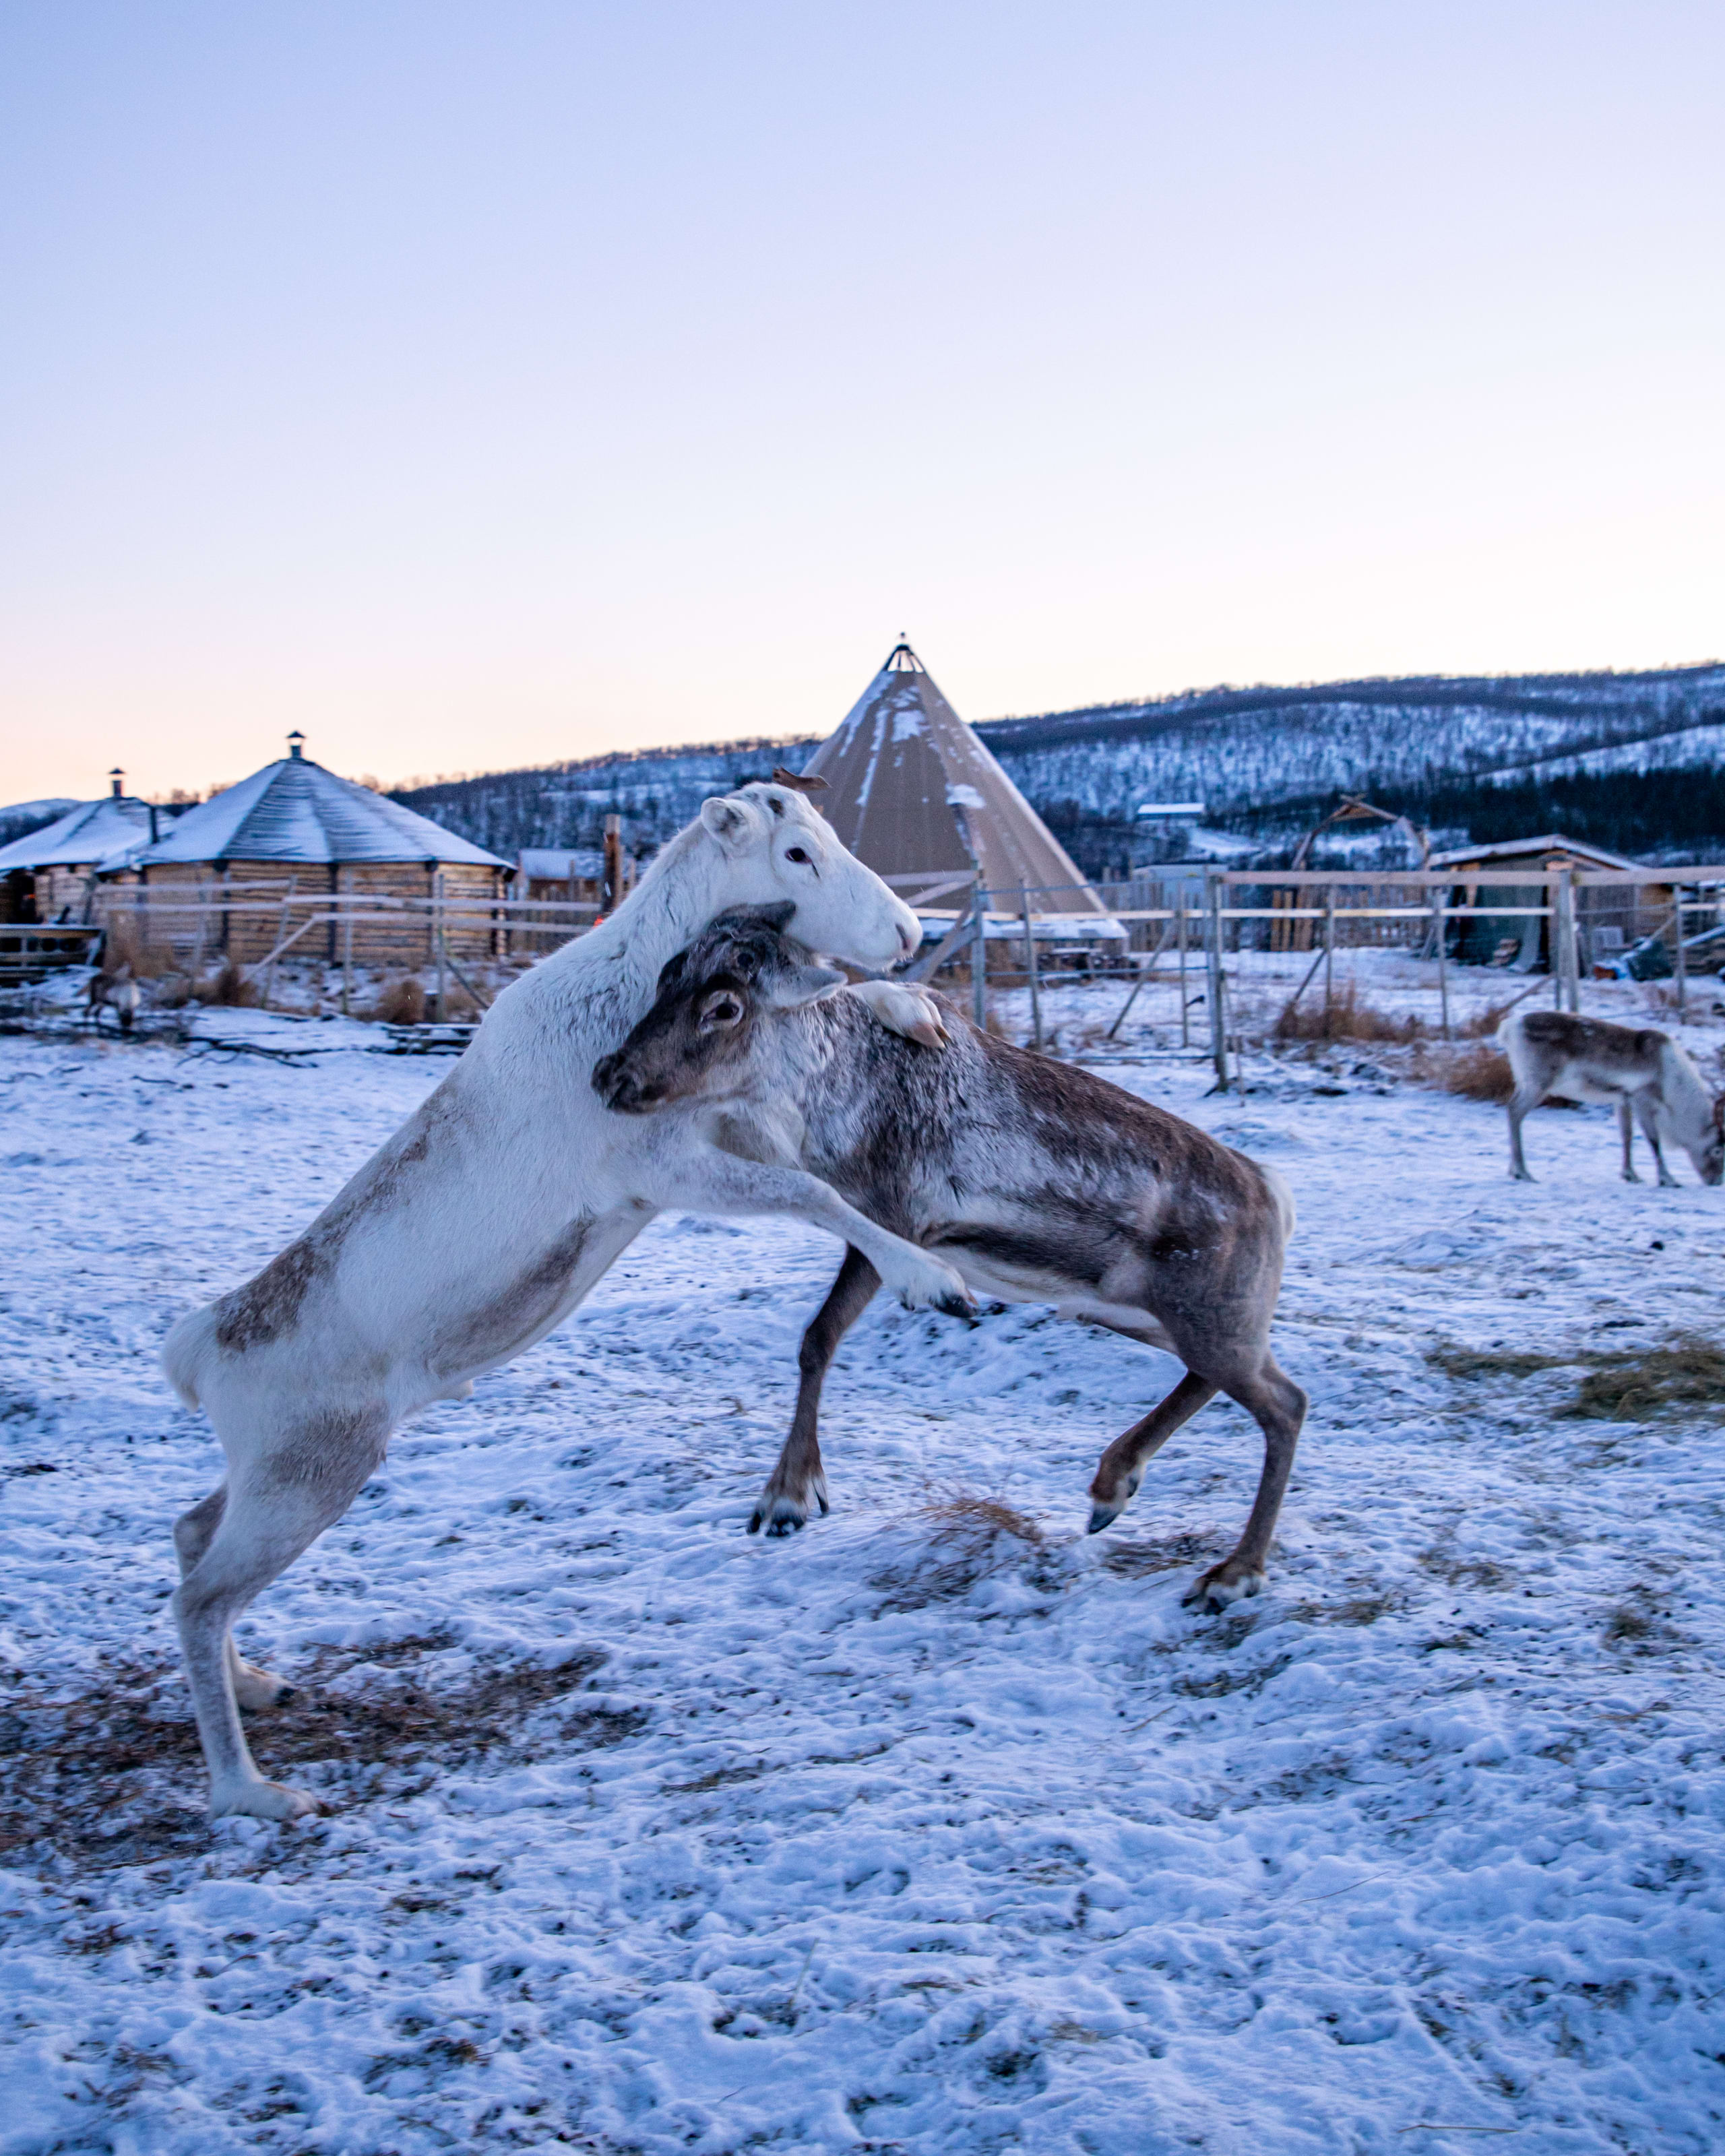 Arctic reindeer playing at the Sami camp in Tromsø